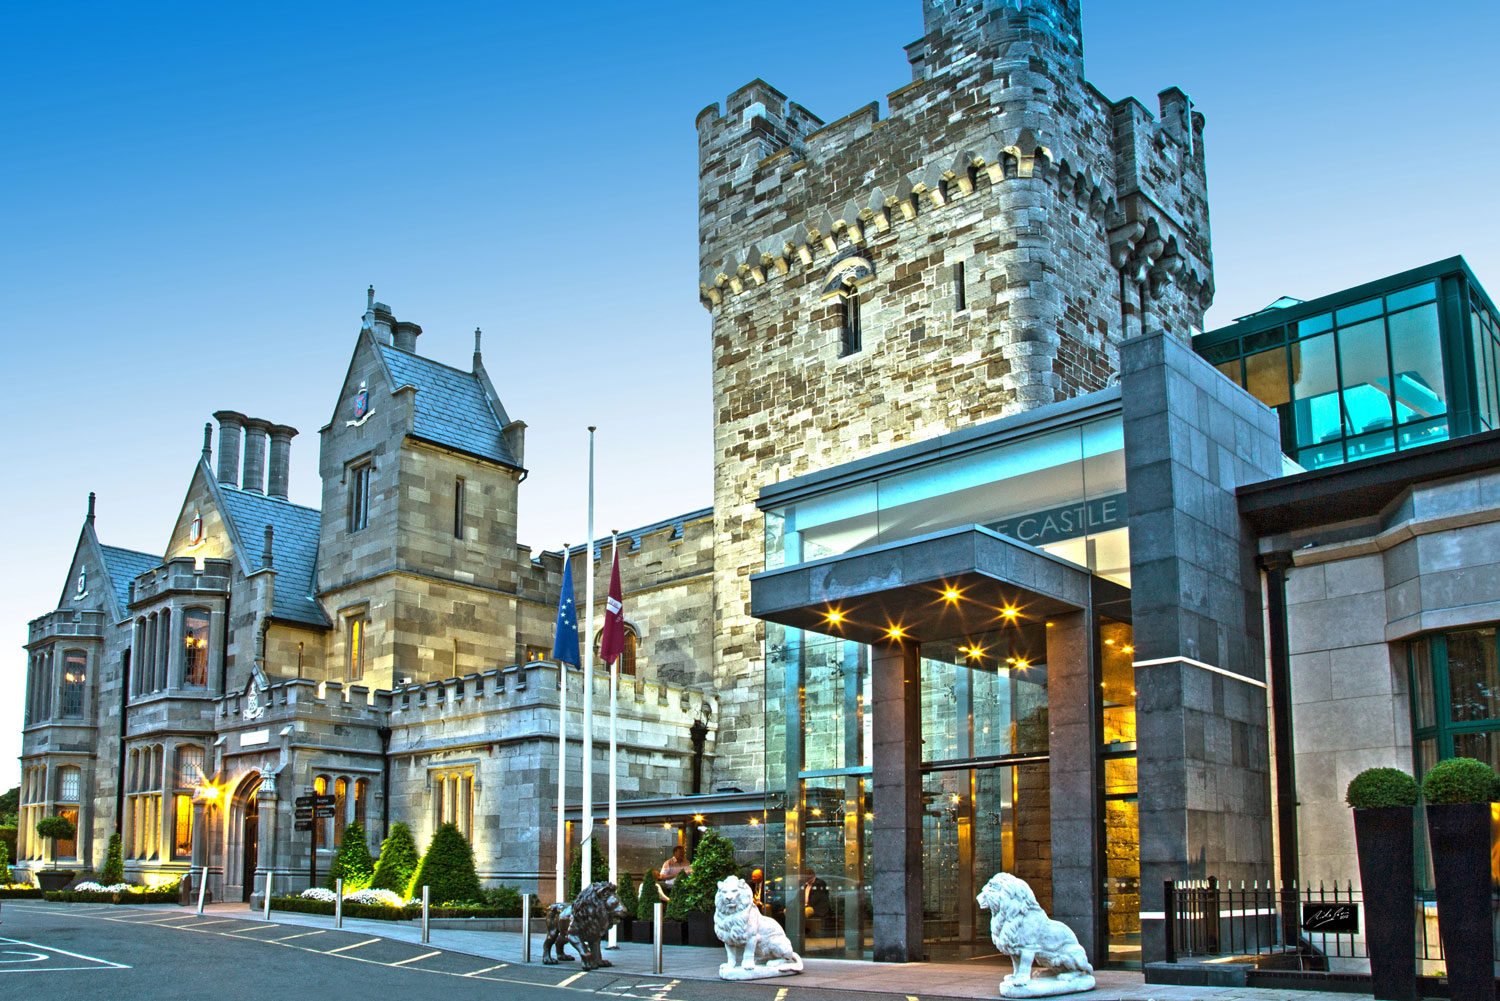 Clontarf Castle Hotel combines an 800-year-old facade with contemporary design.